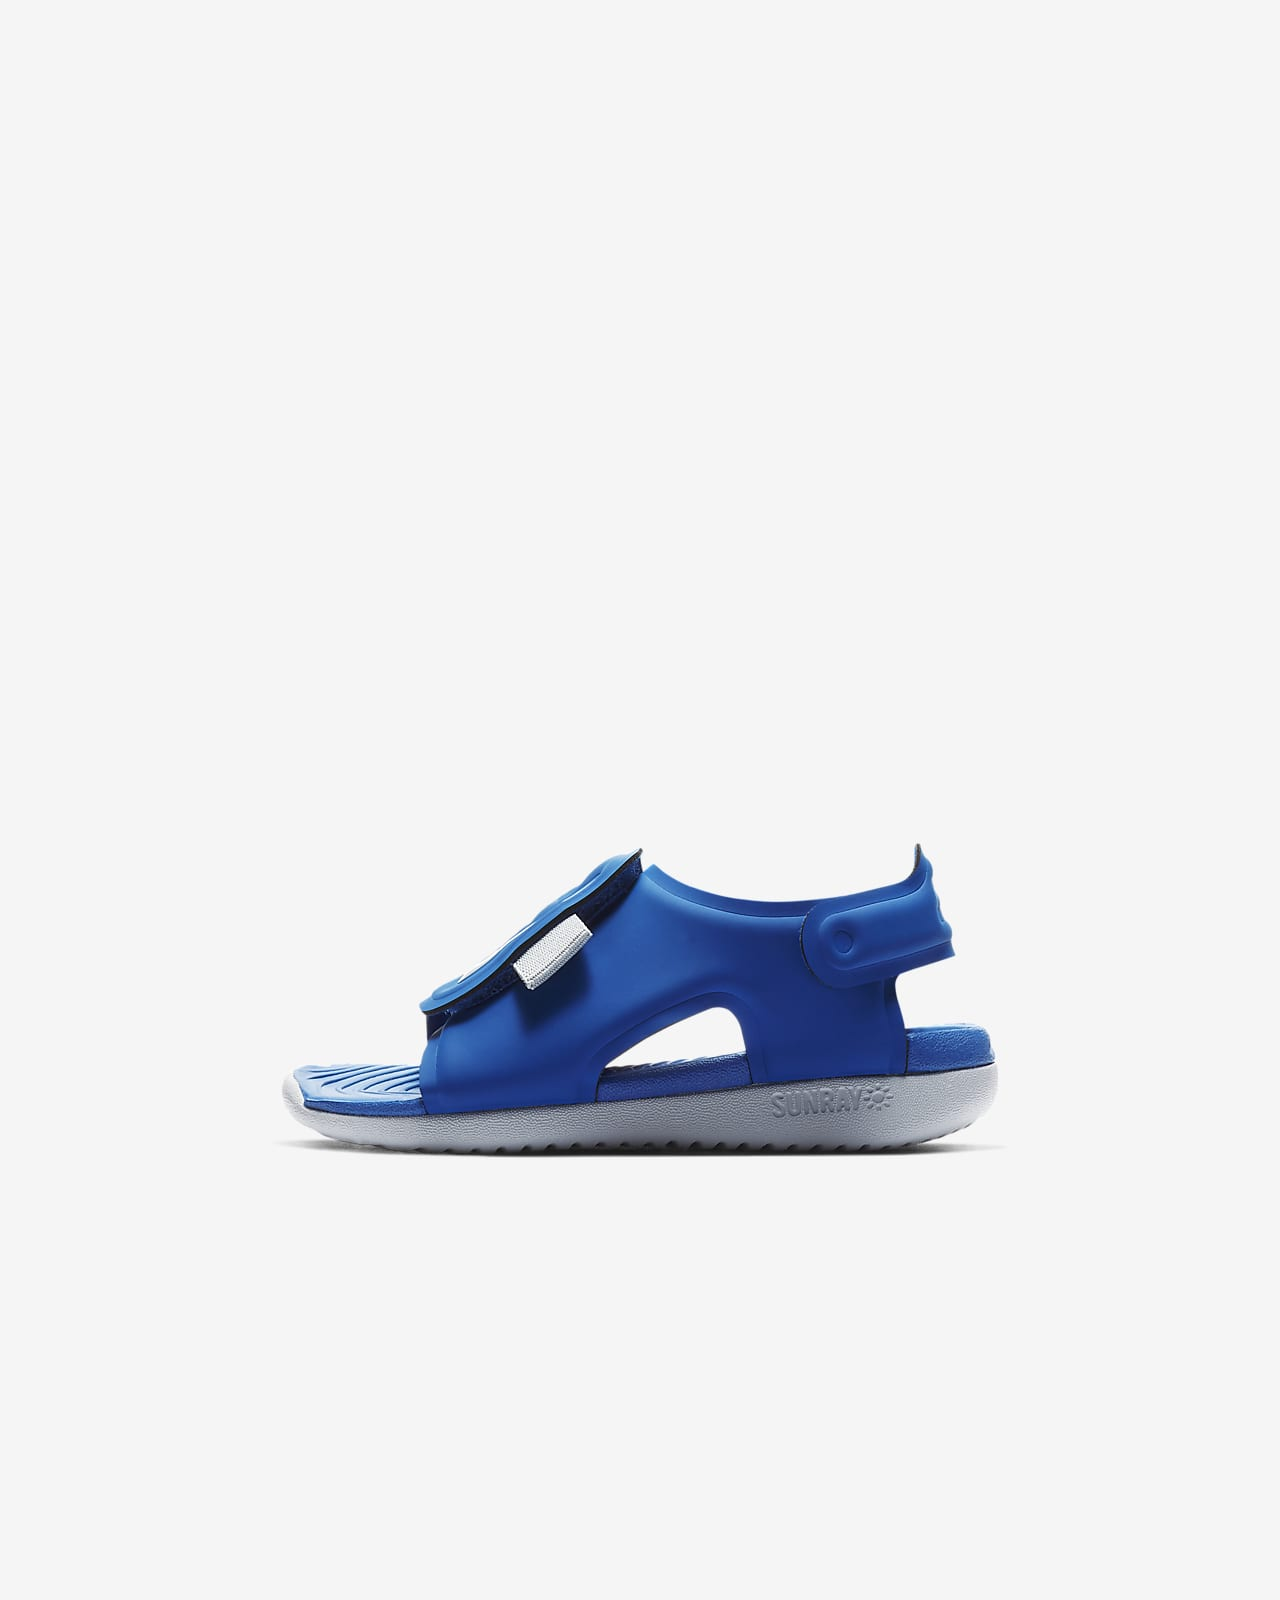 Nike Sunray Adjust 5 Infant/Toddler Sandal